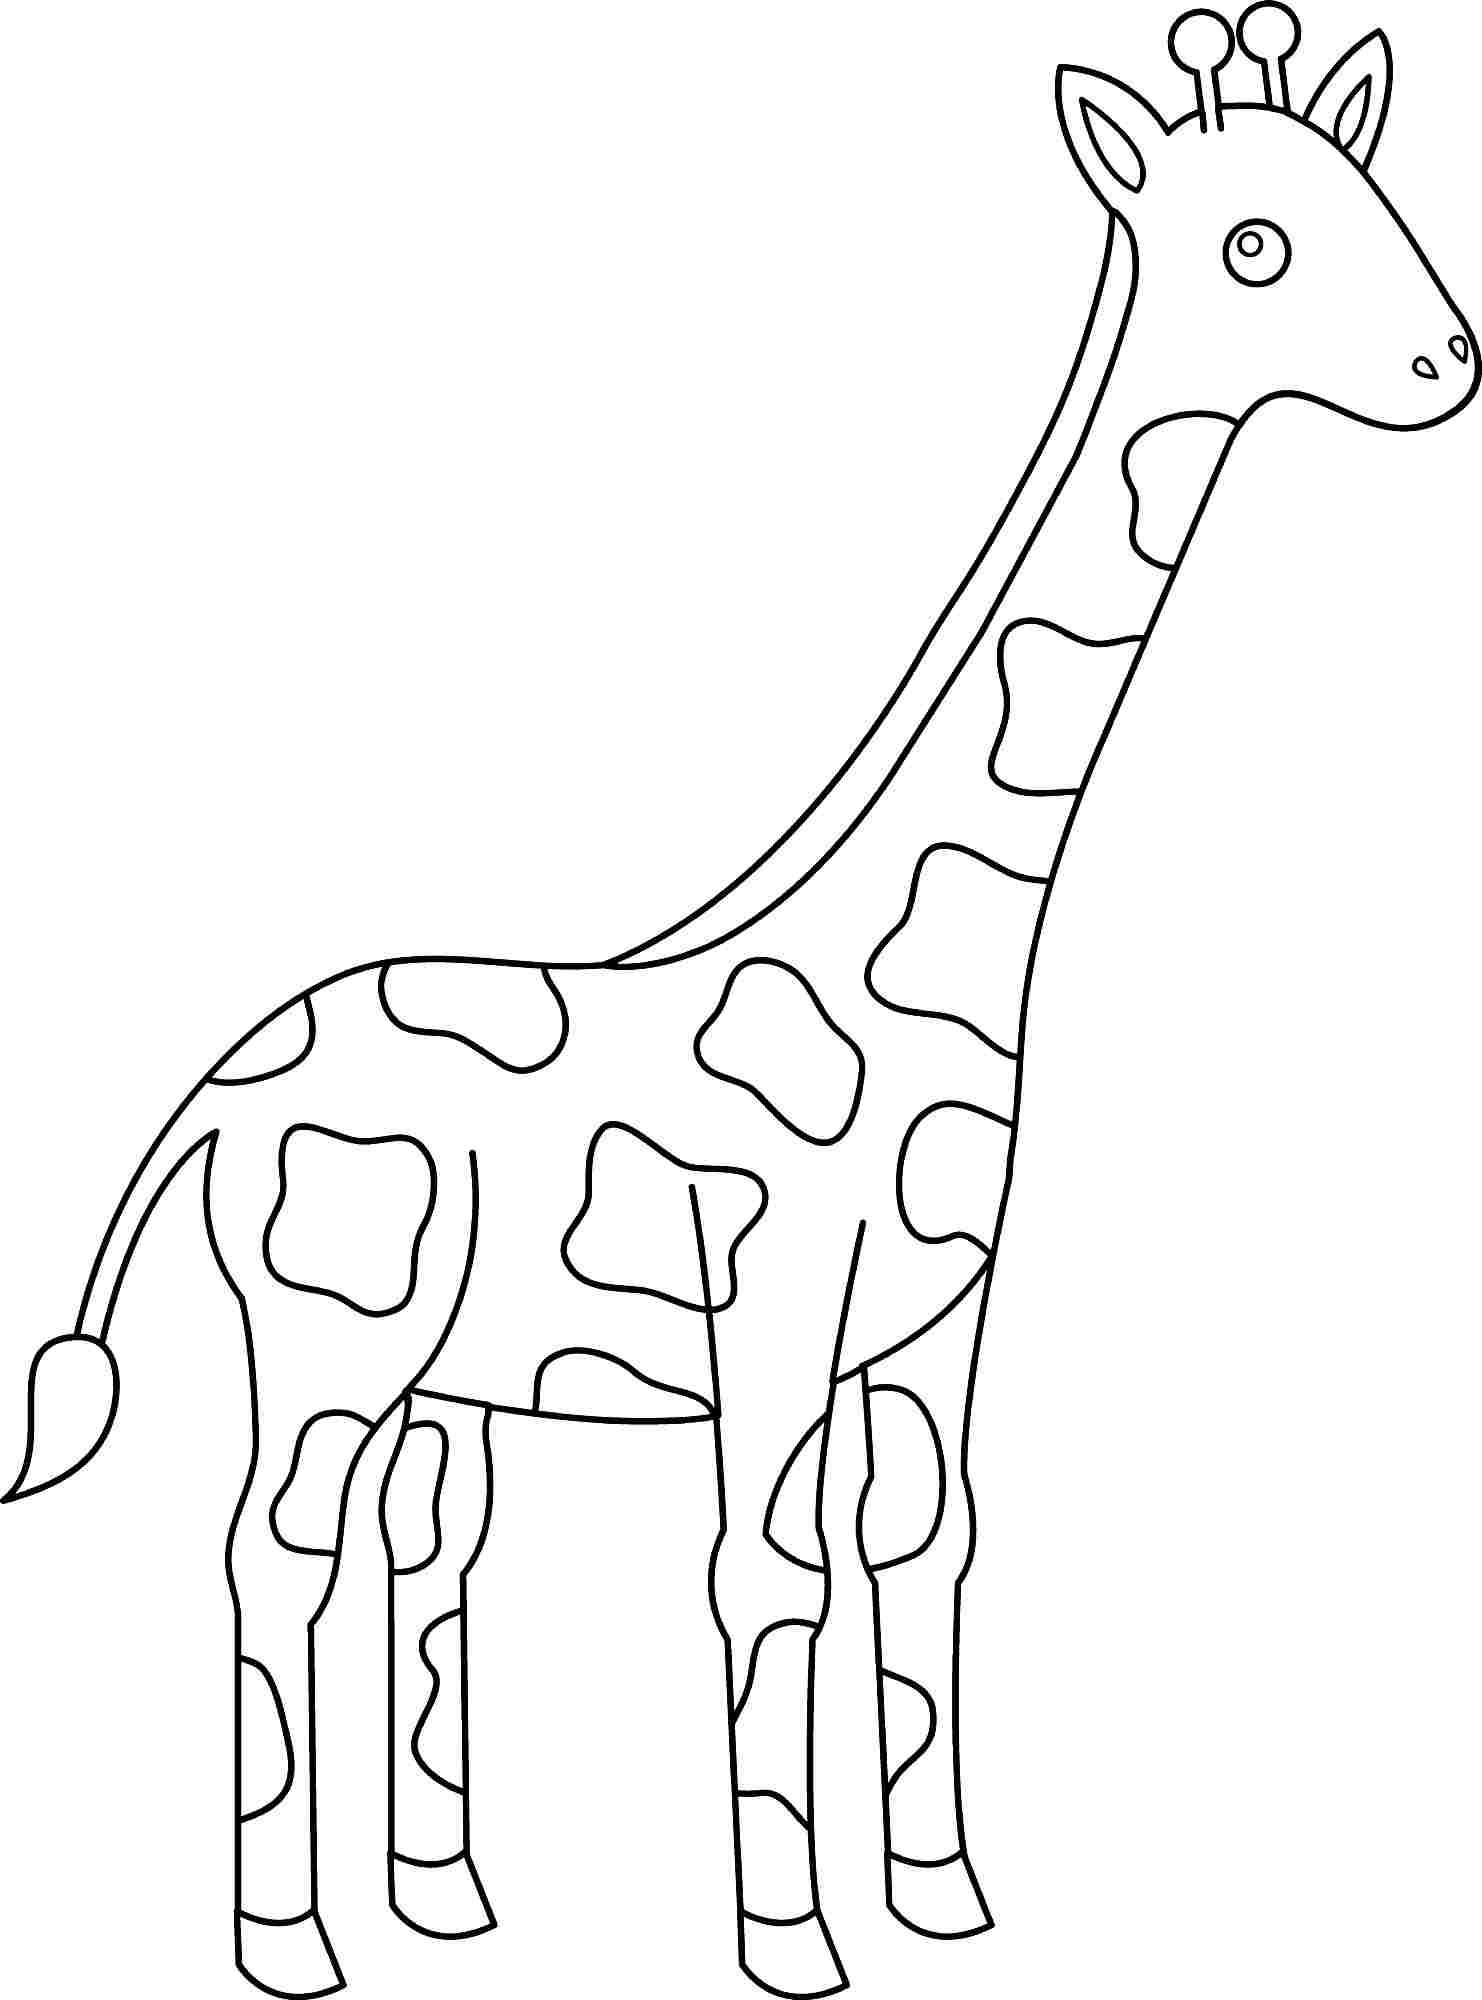 Giraffe Coloring Pages Printable At Getdrawings Com Free For